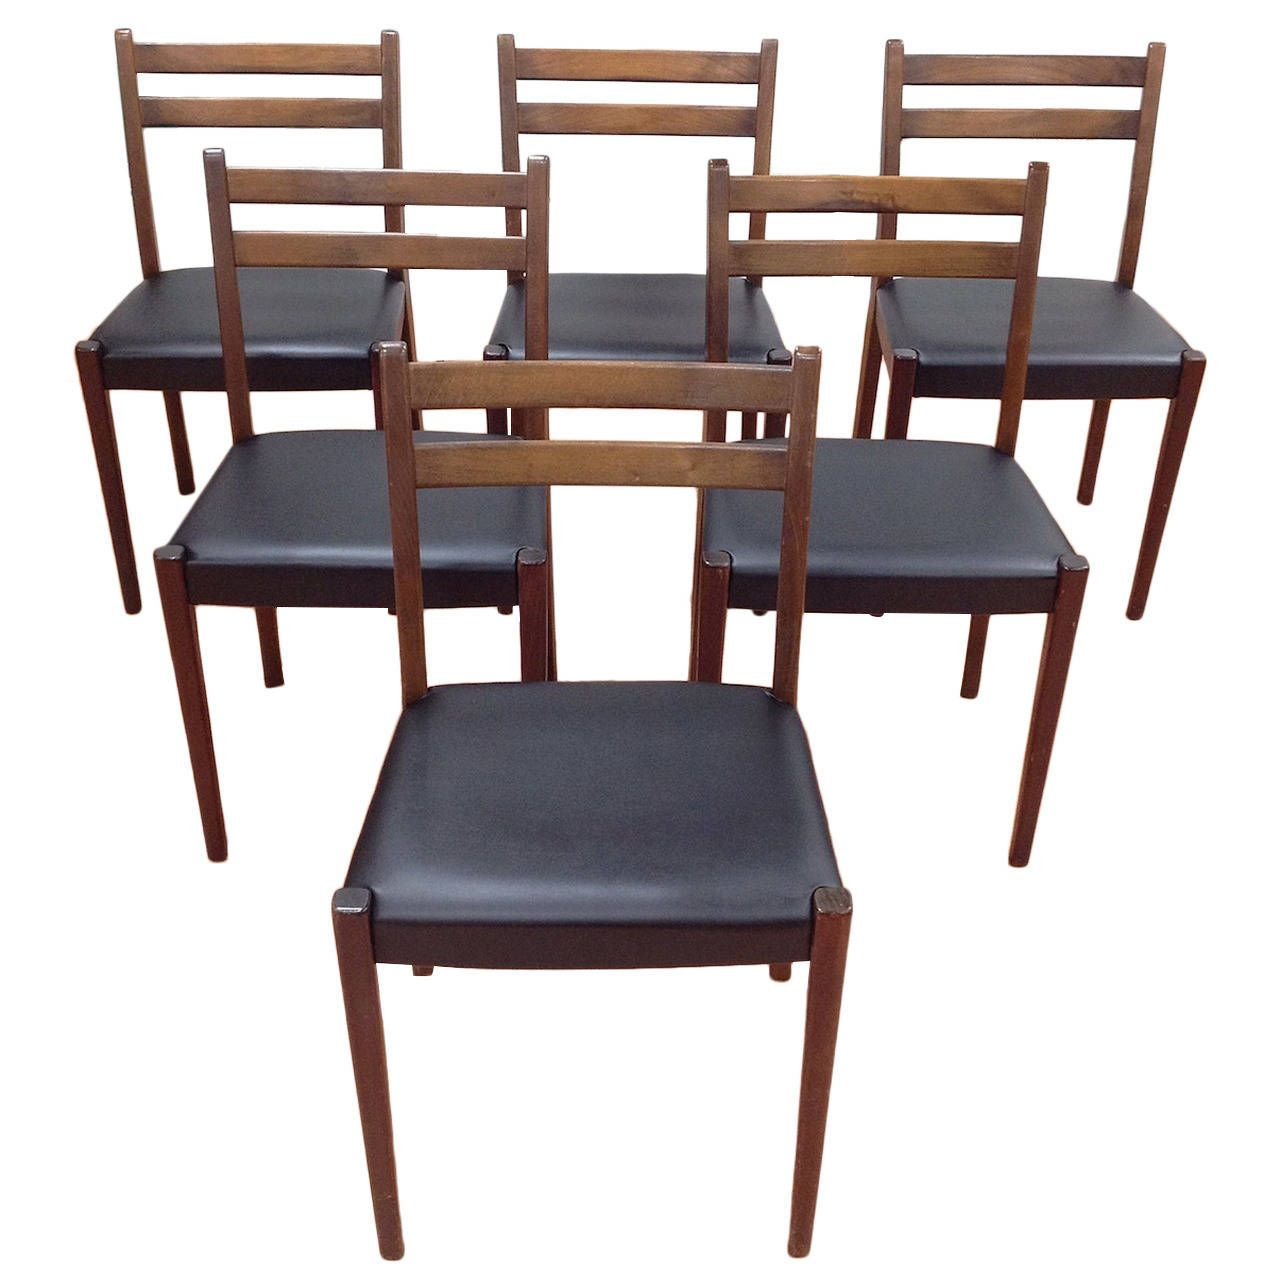 Set Of Six Danish Modern Dining Chairs, Made In Sweden By